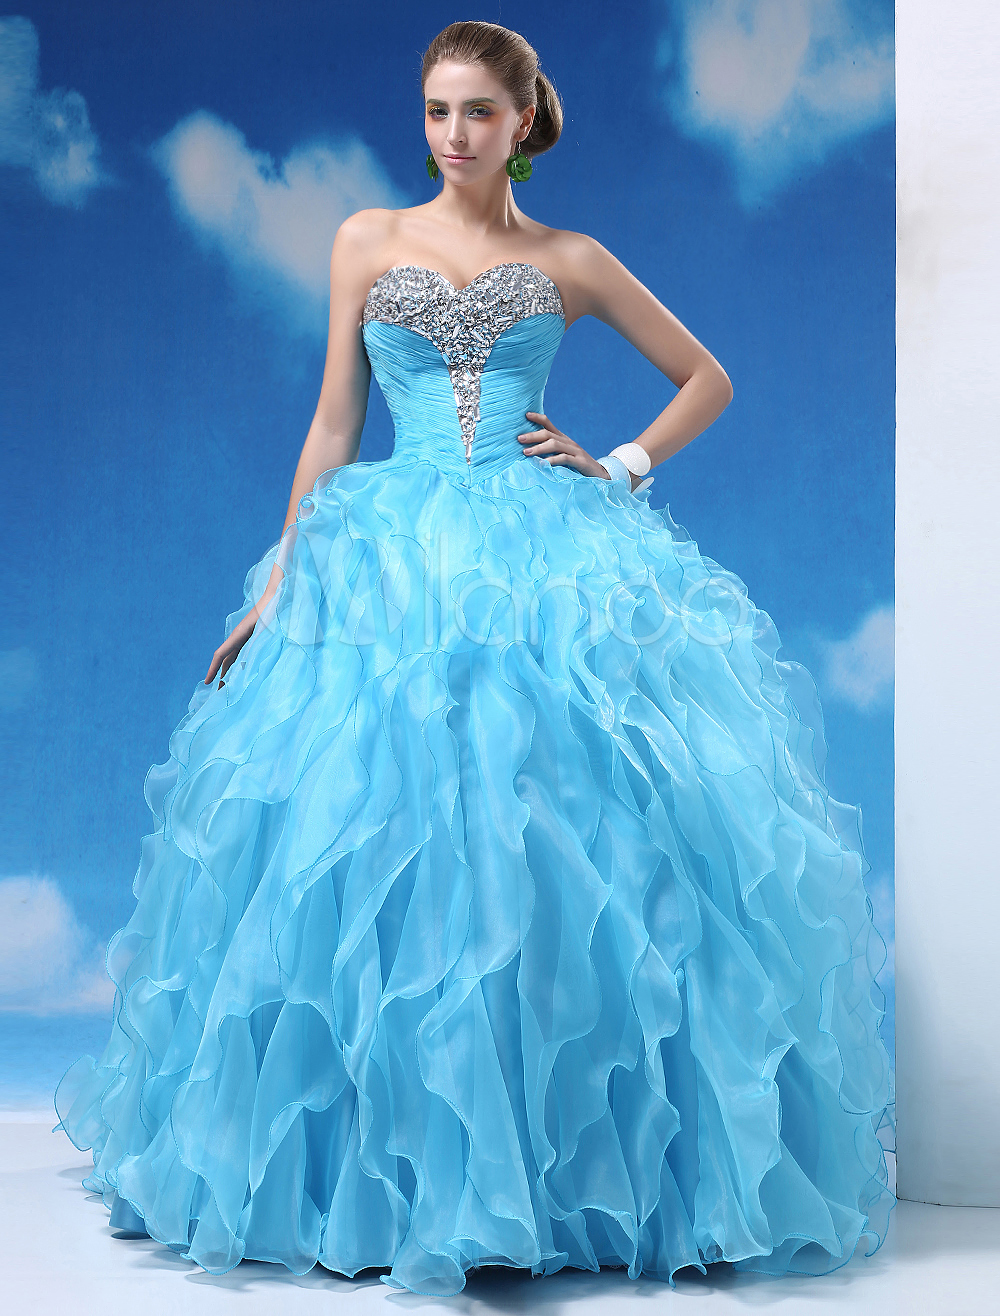 Light Sky Blue Ball Gown Floor-Length Quinceanera Dress with Sweetheart Neck  Milanoo